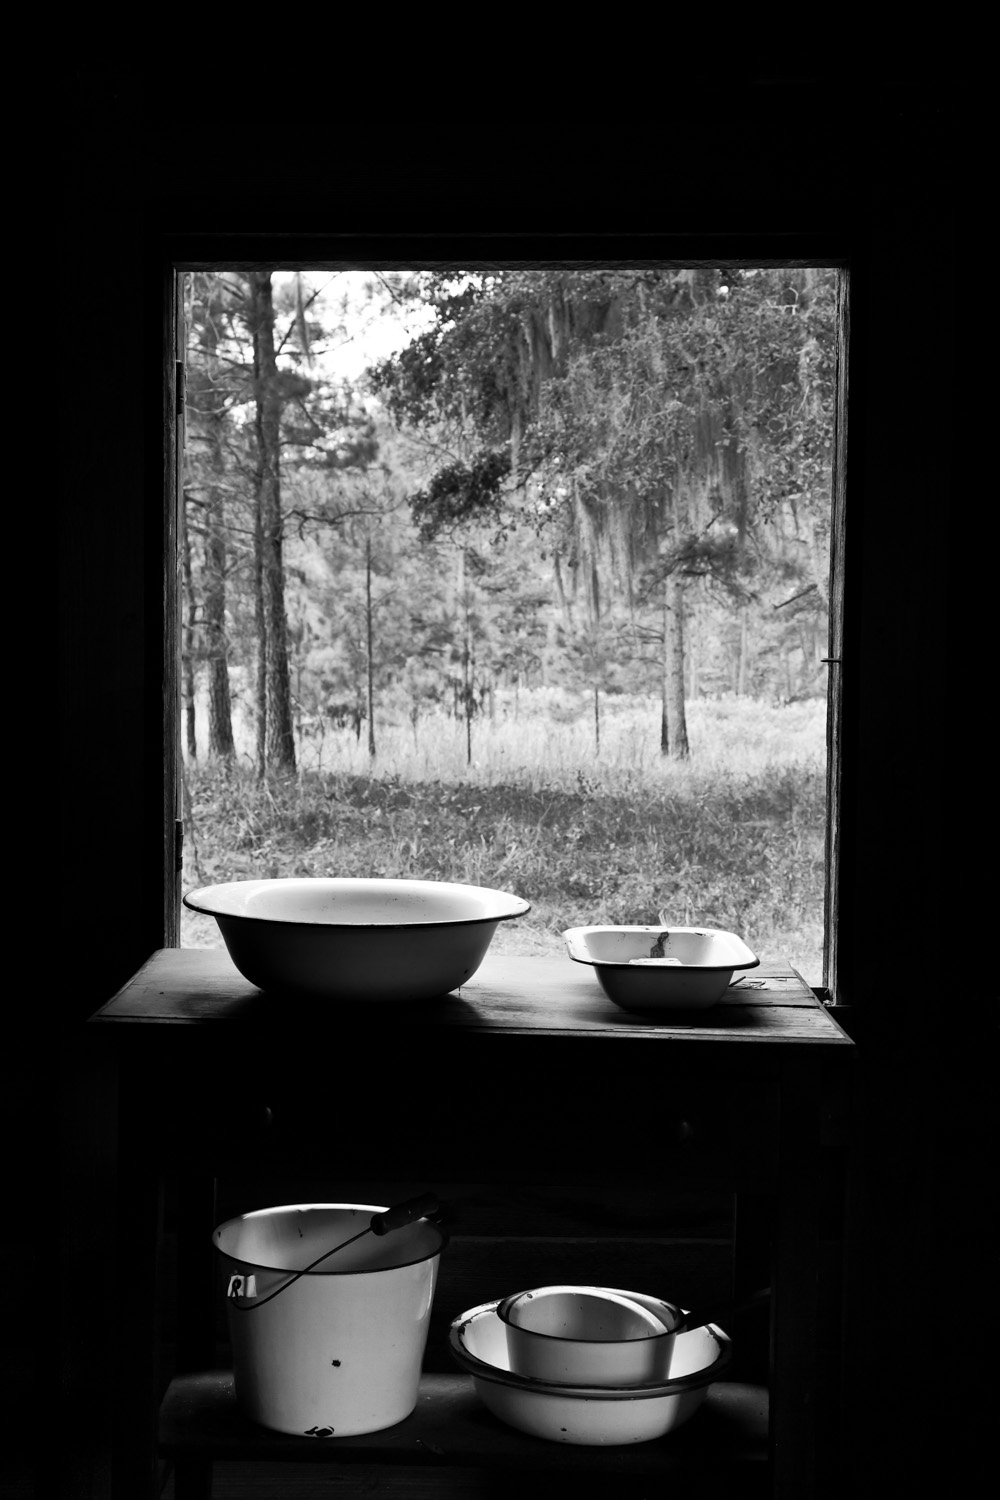 View From Kitchen Window, 2010